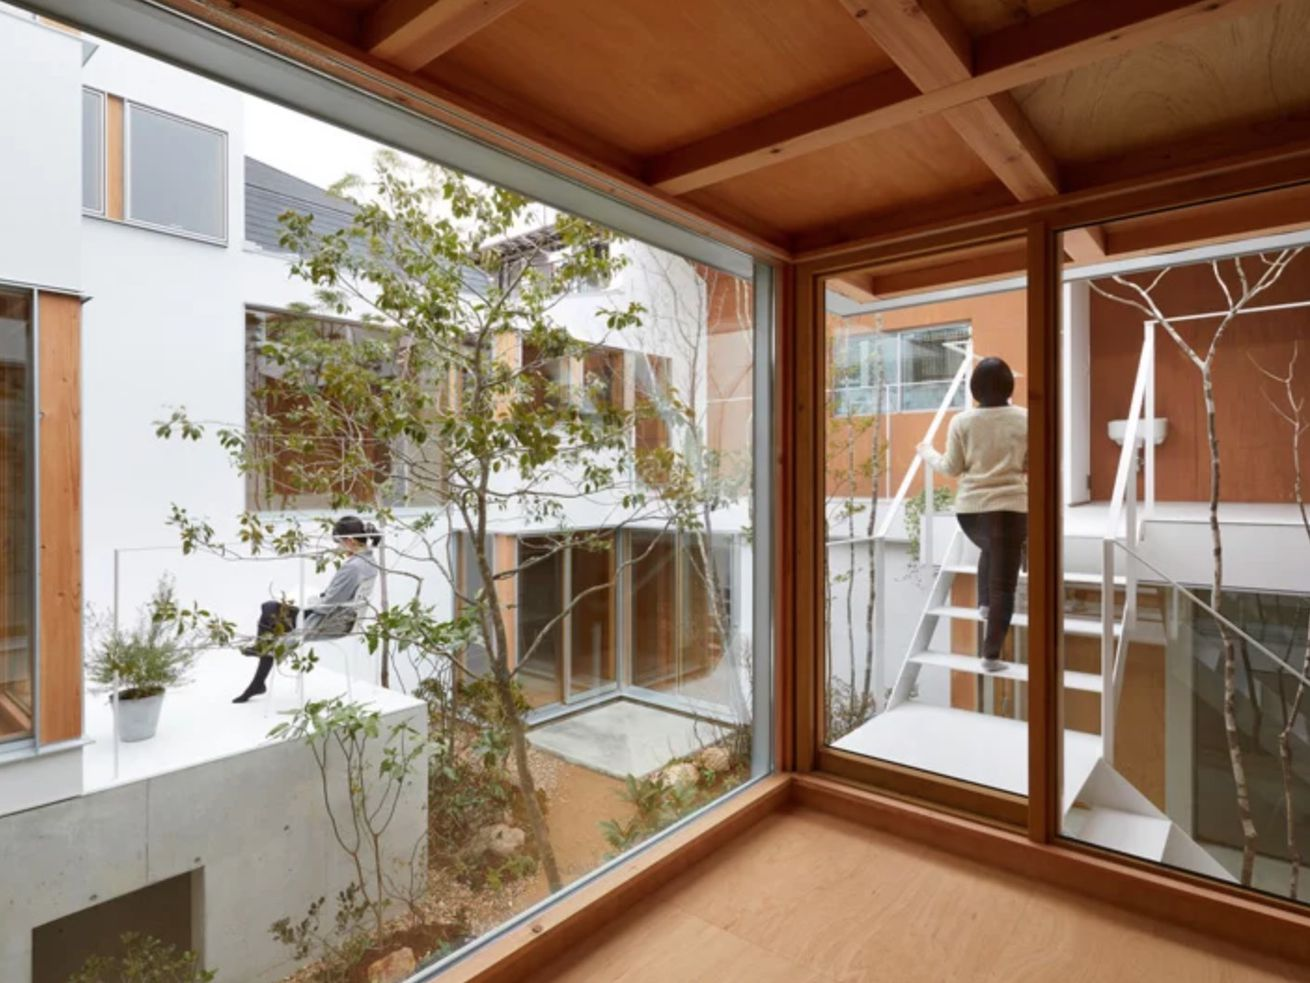 Modern Japanese house is serious courtyard goals